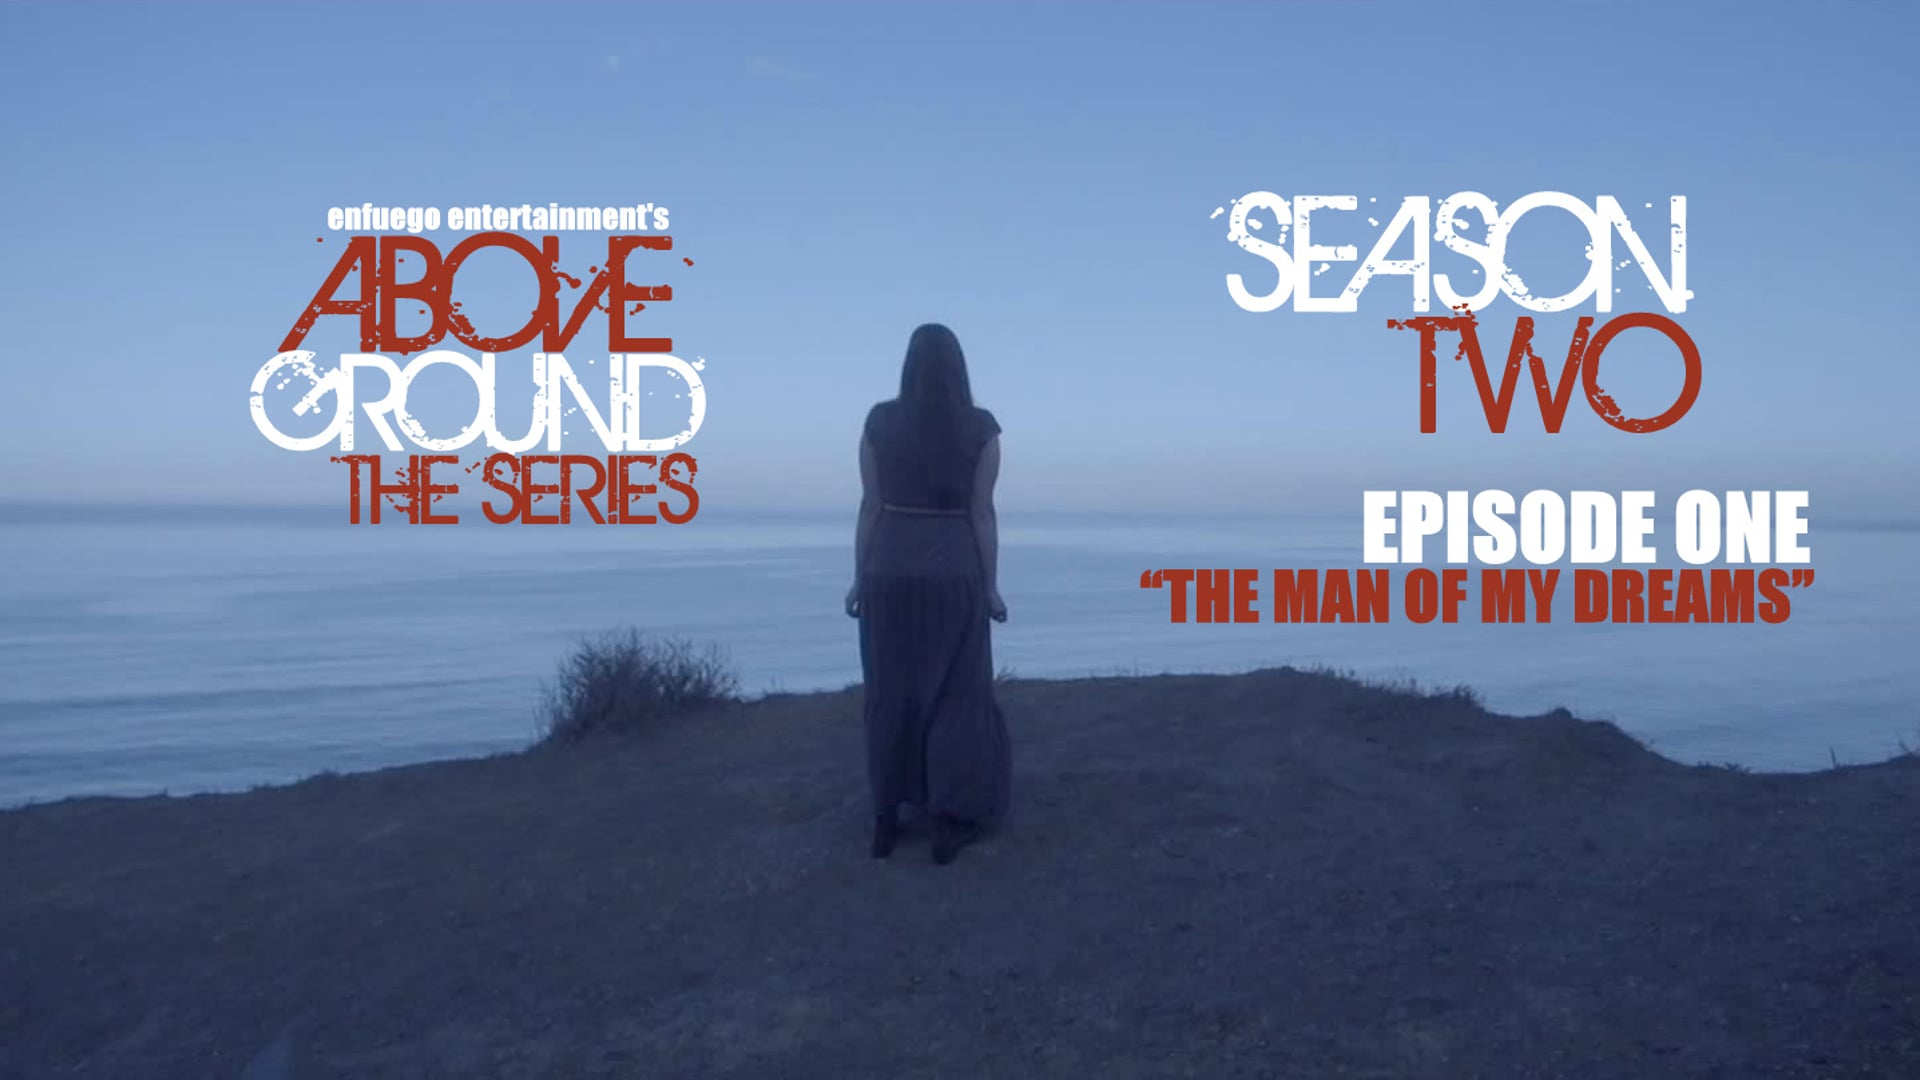 """AboveGround The Series - Ep. 2.1 """"The Man of My Dreams"""" - Season Two"""